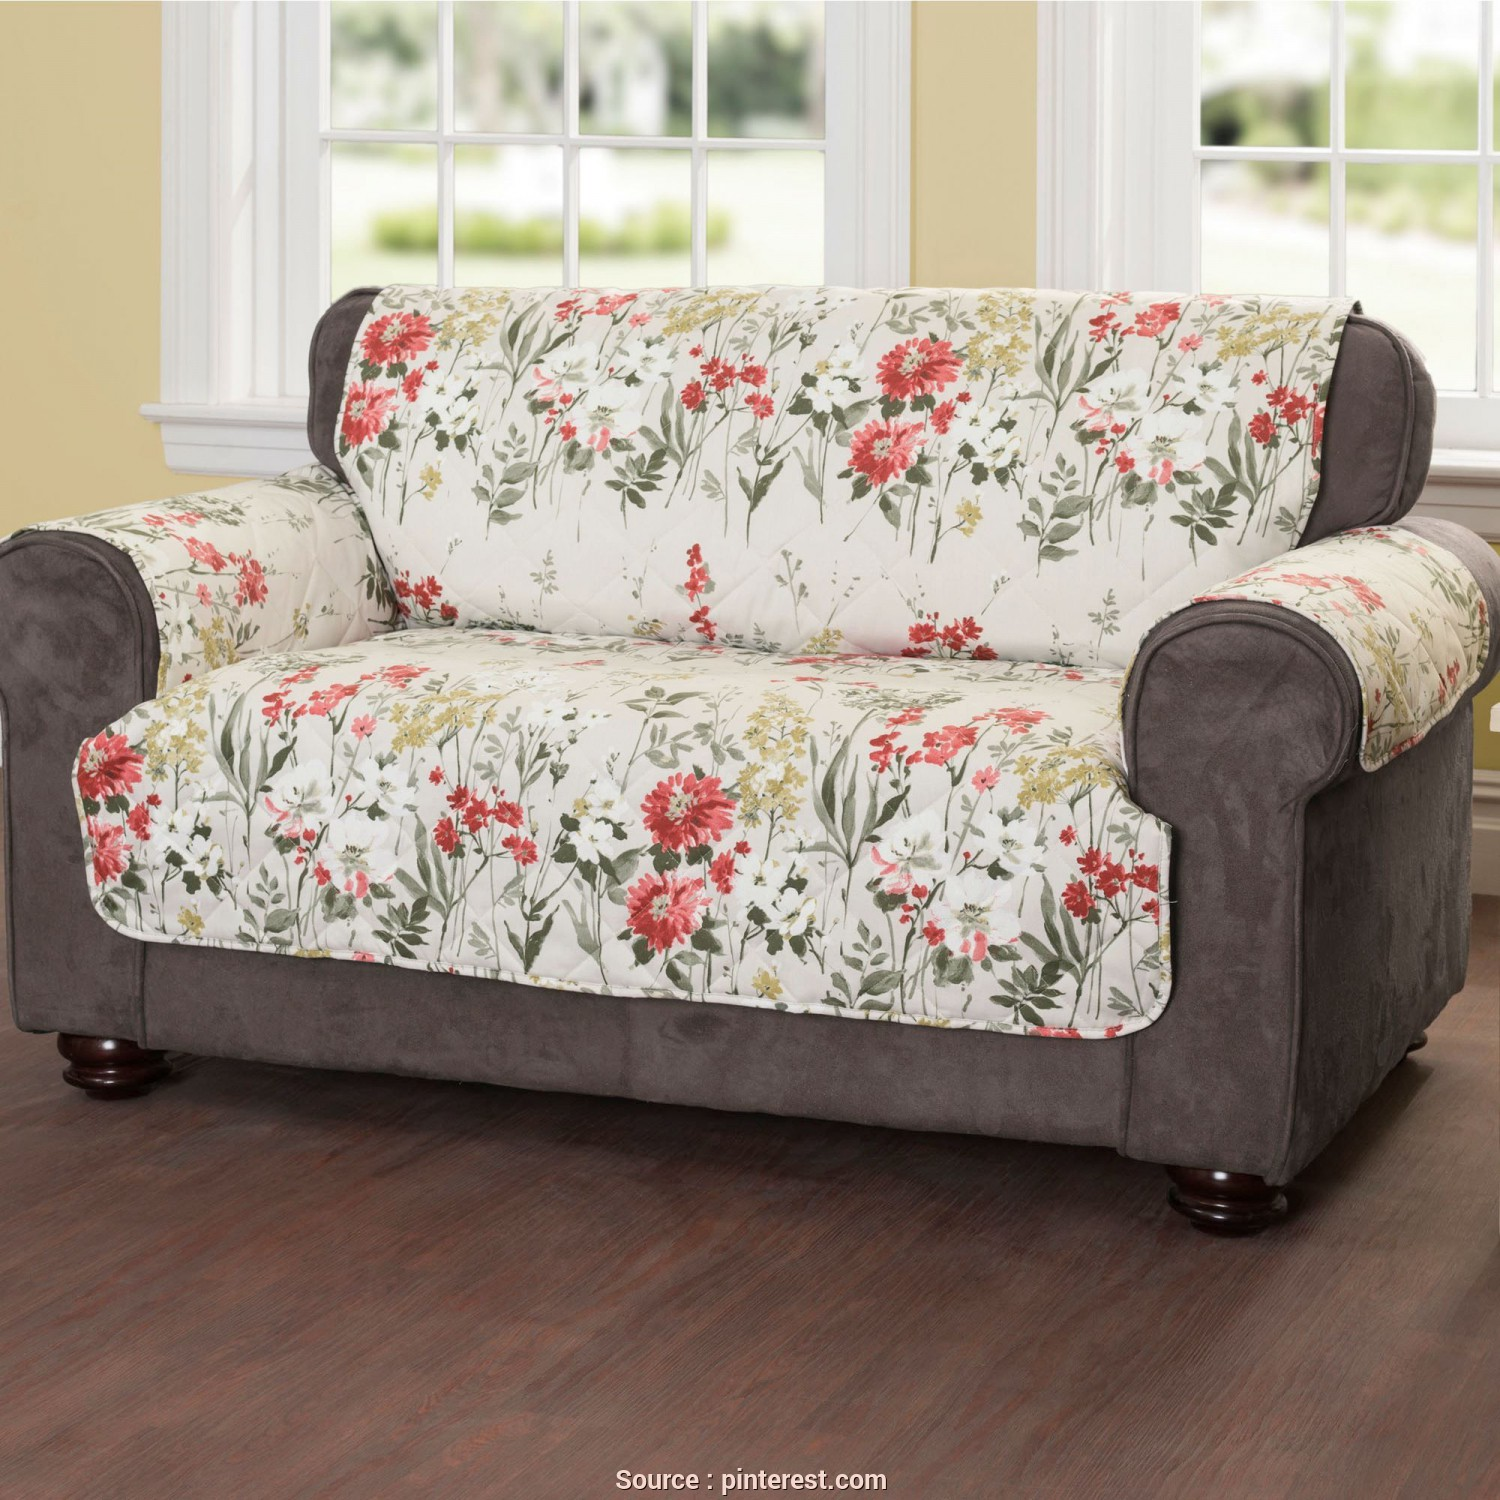 Copridivano Sofa Saver, Amabile Floral Meadow Quilted Furniture Protectors, Living Room